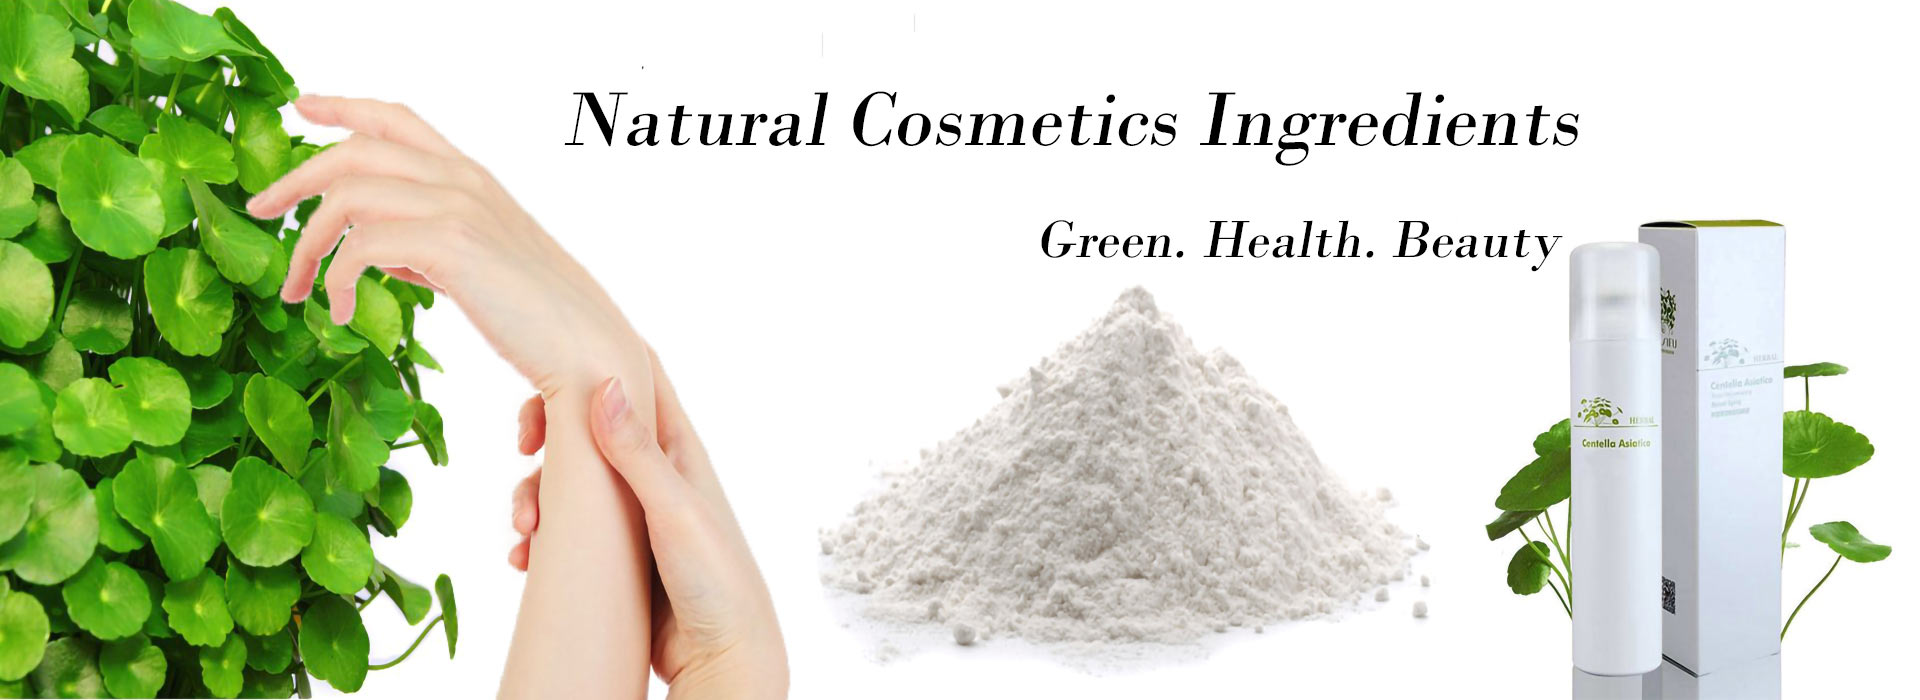 Natural Cosmetics Ingredient 1920X700